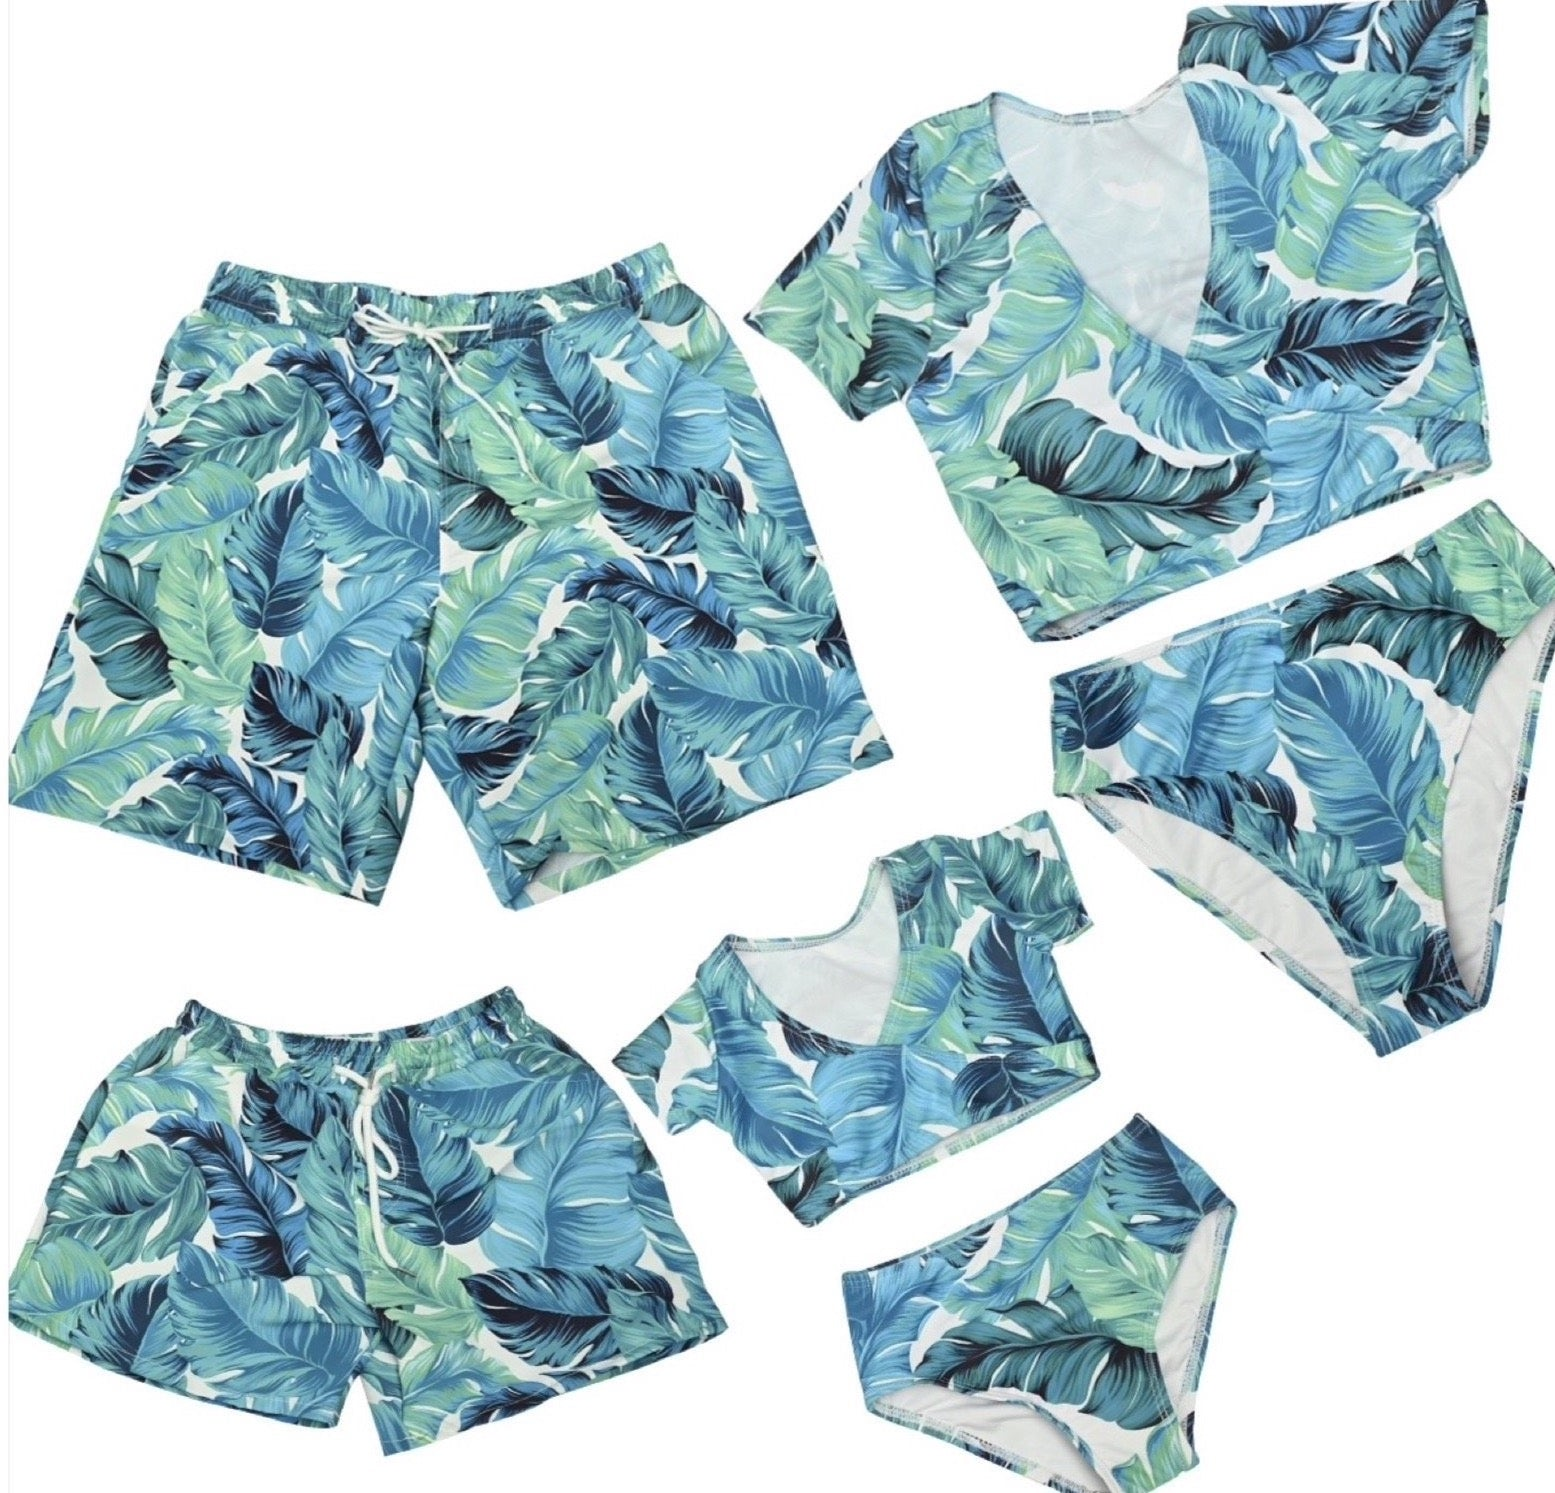 OCEANVIEW FAMILY MATCHING SWIMSUIT